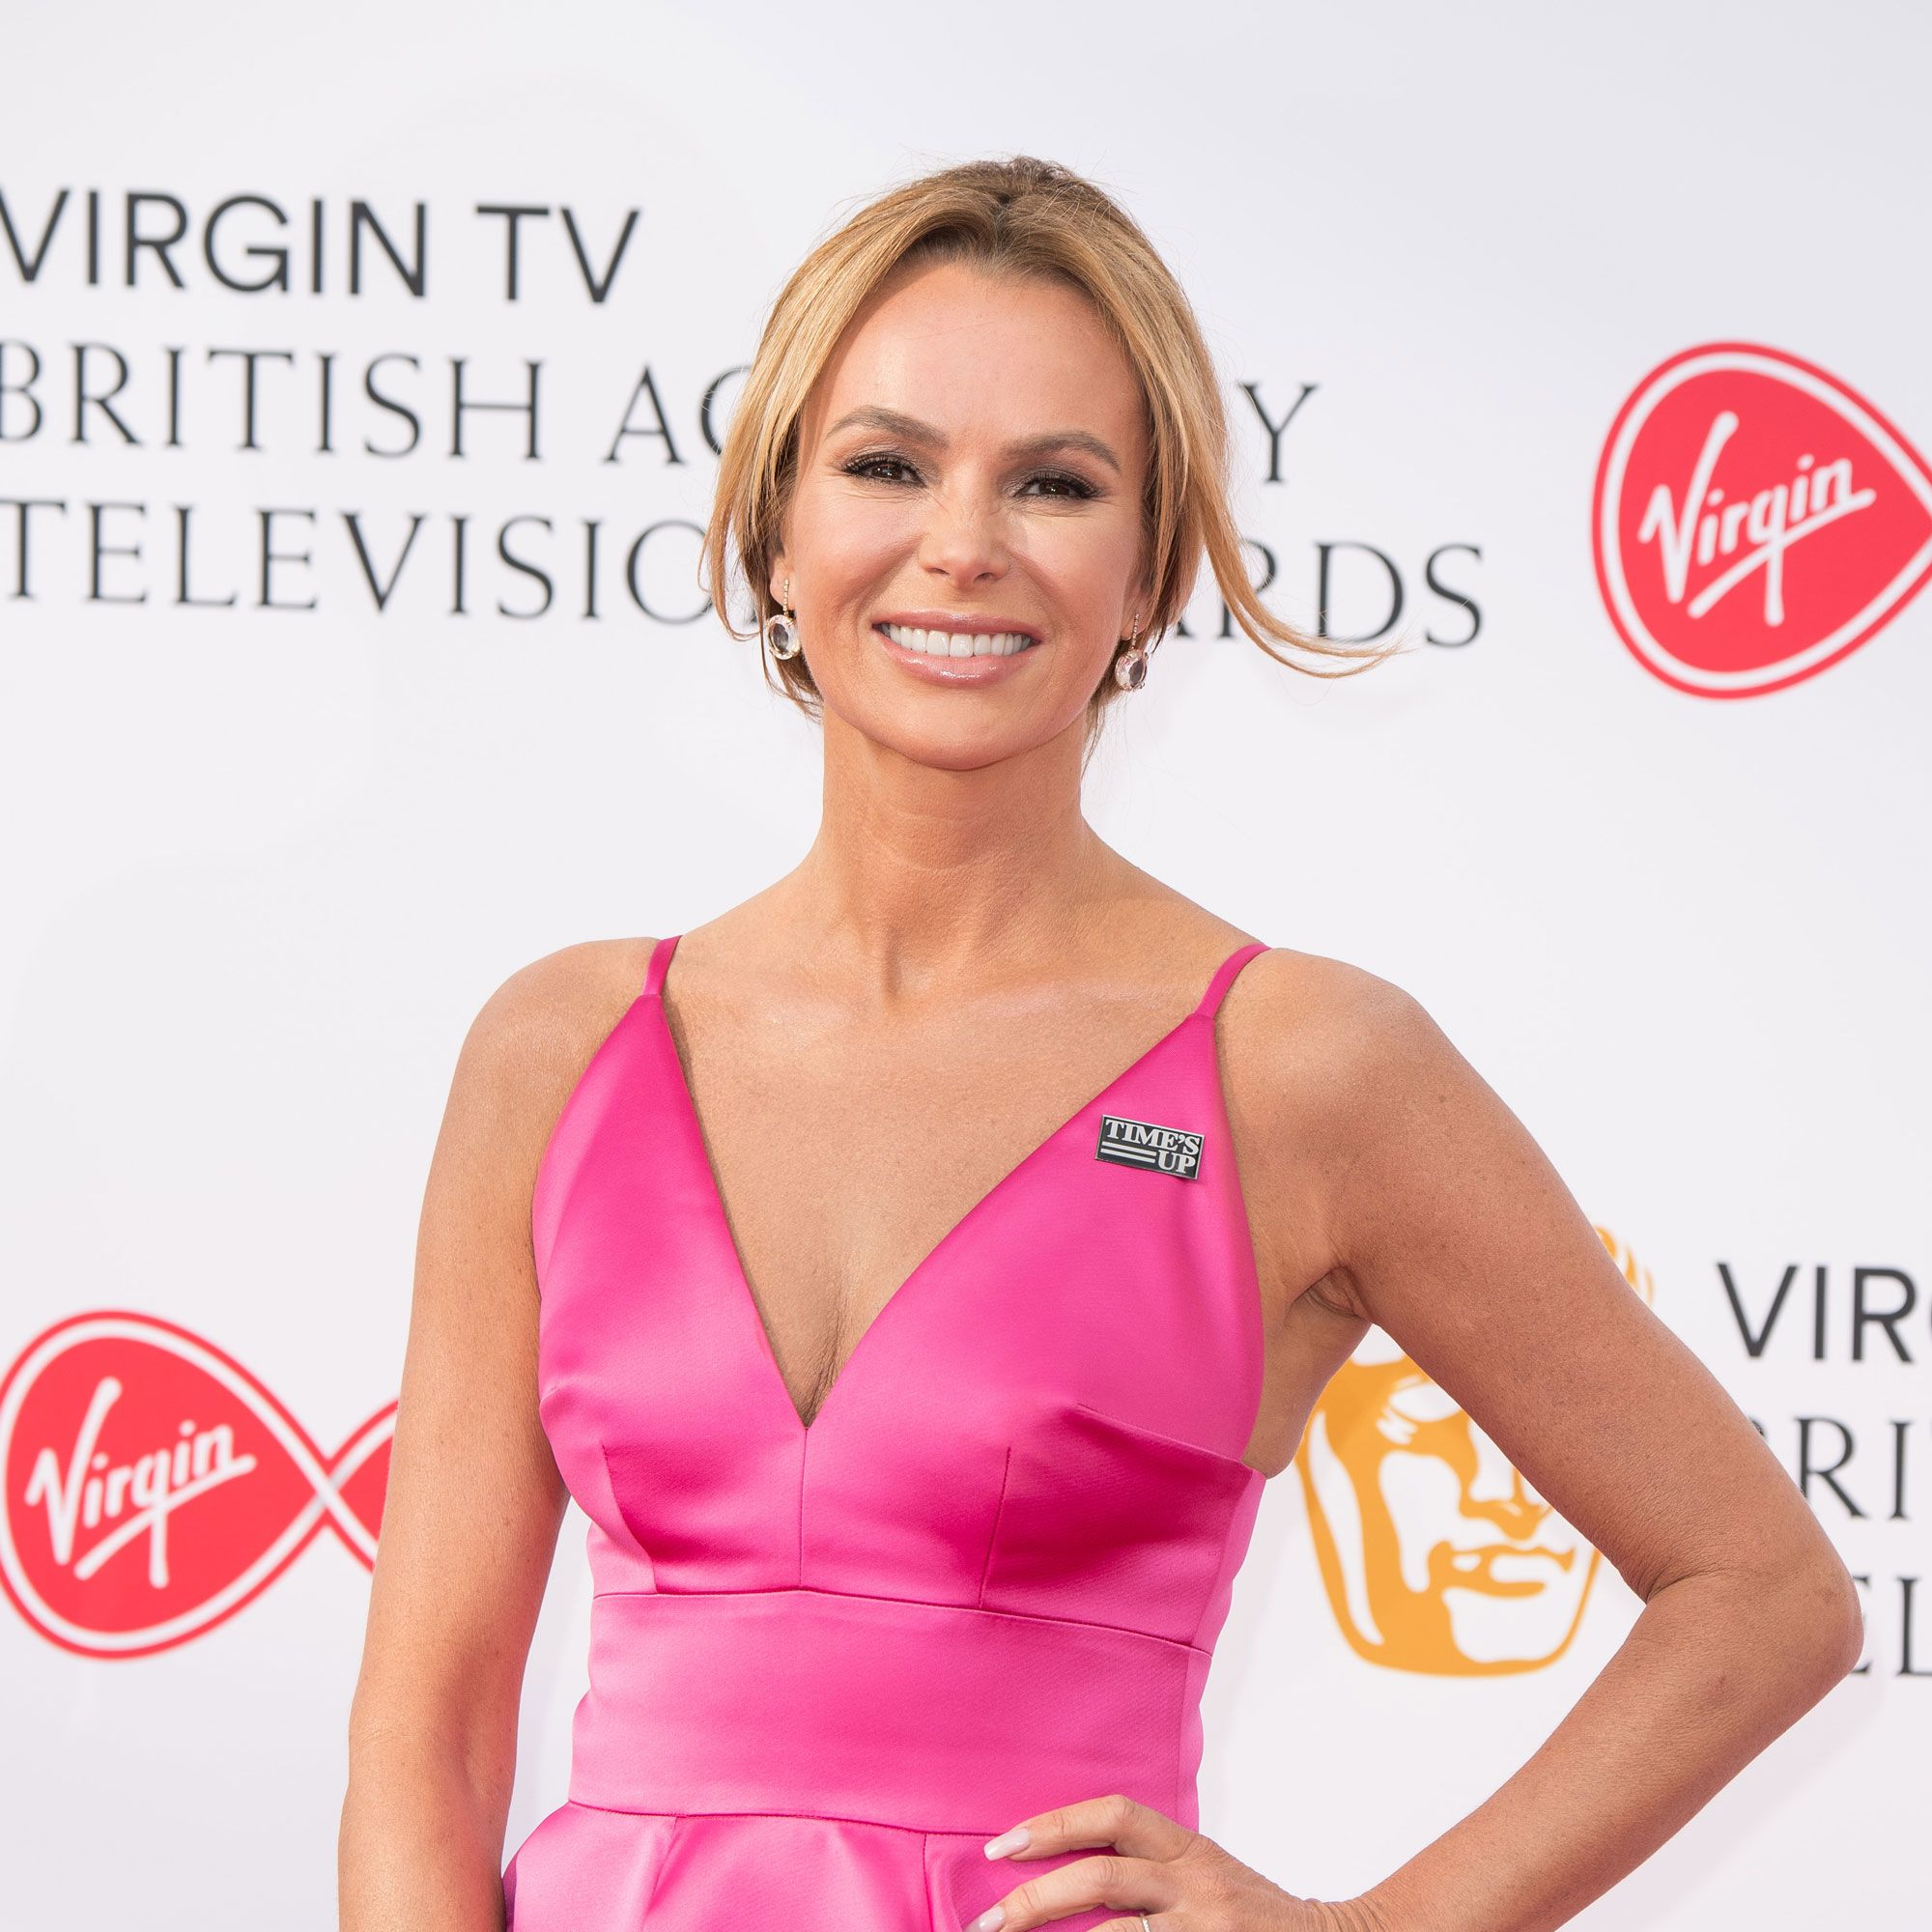 Britain's Got Talent's Amanda Holden almost landed a lead role in this classic comedy series